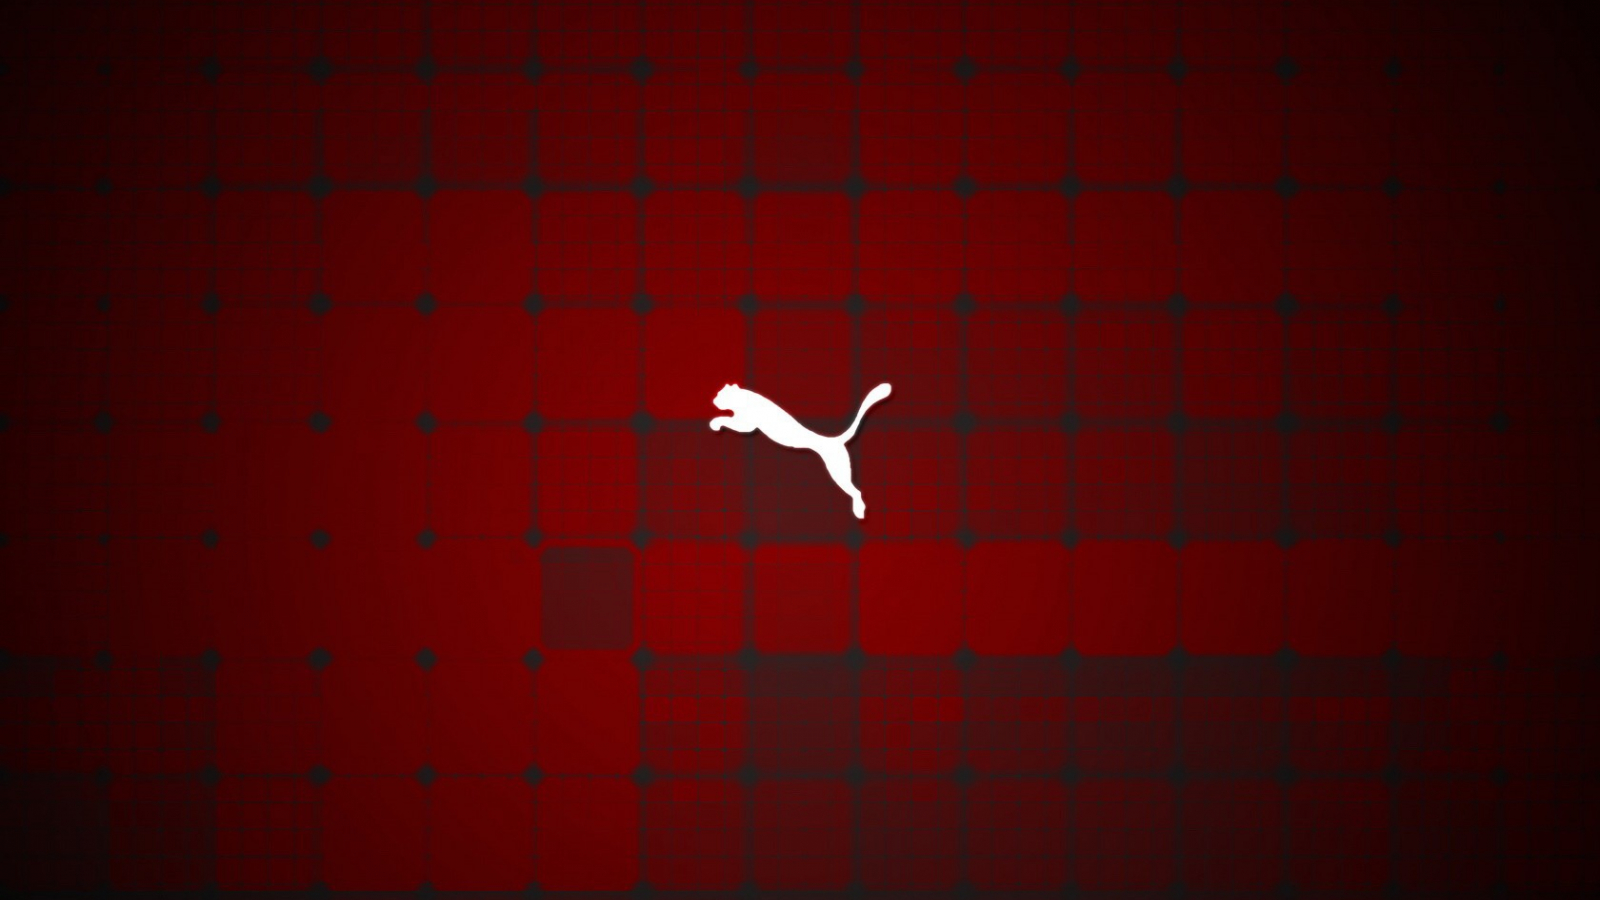 puma wallpaper iphone - HD 1600×900